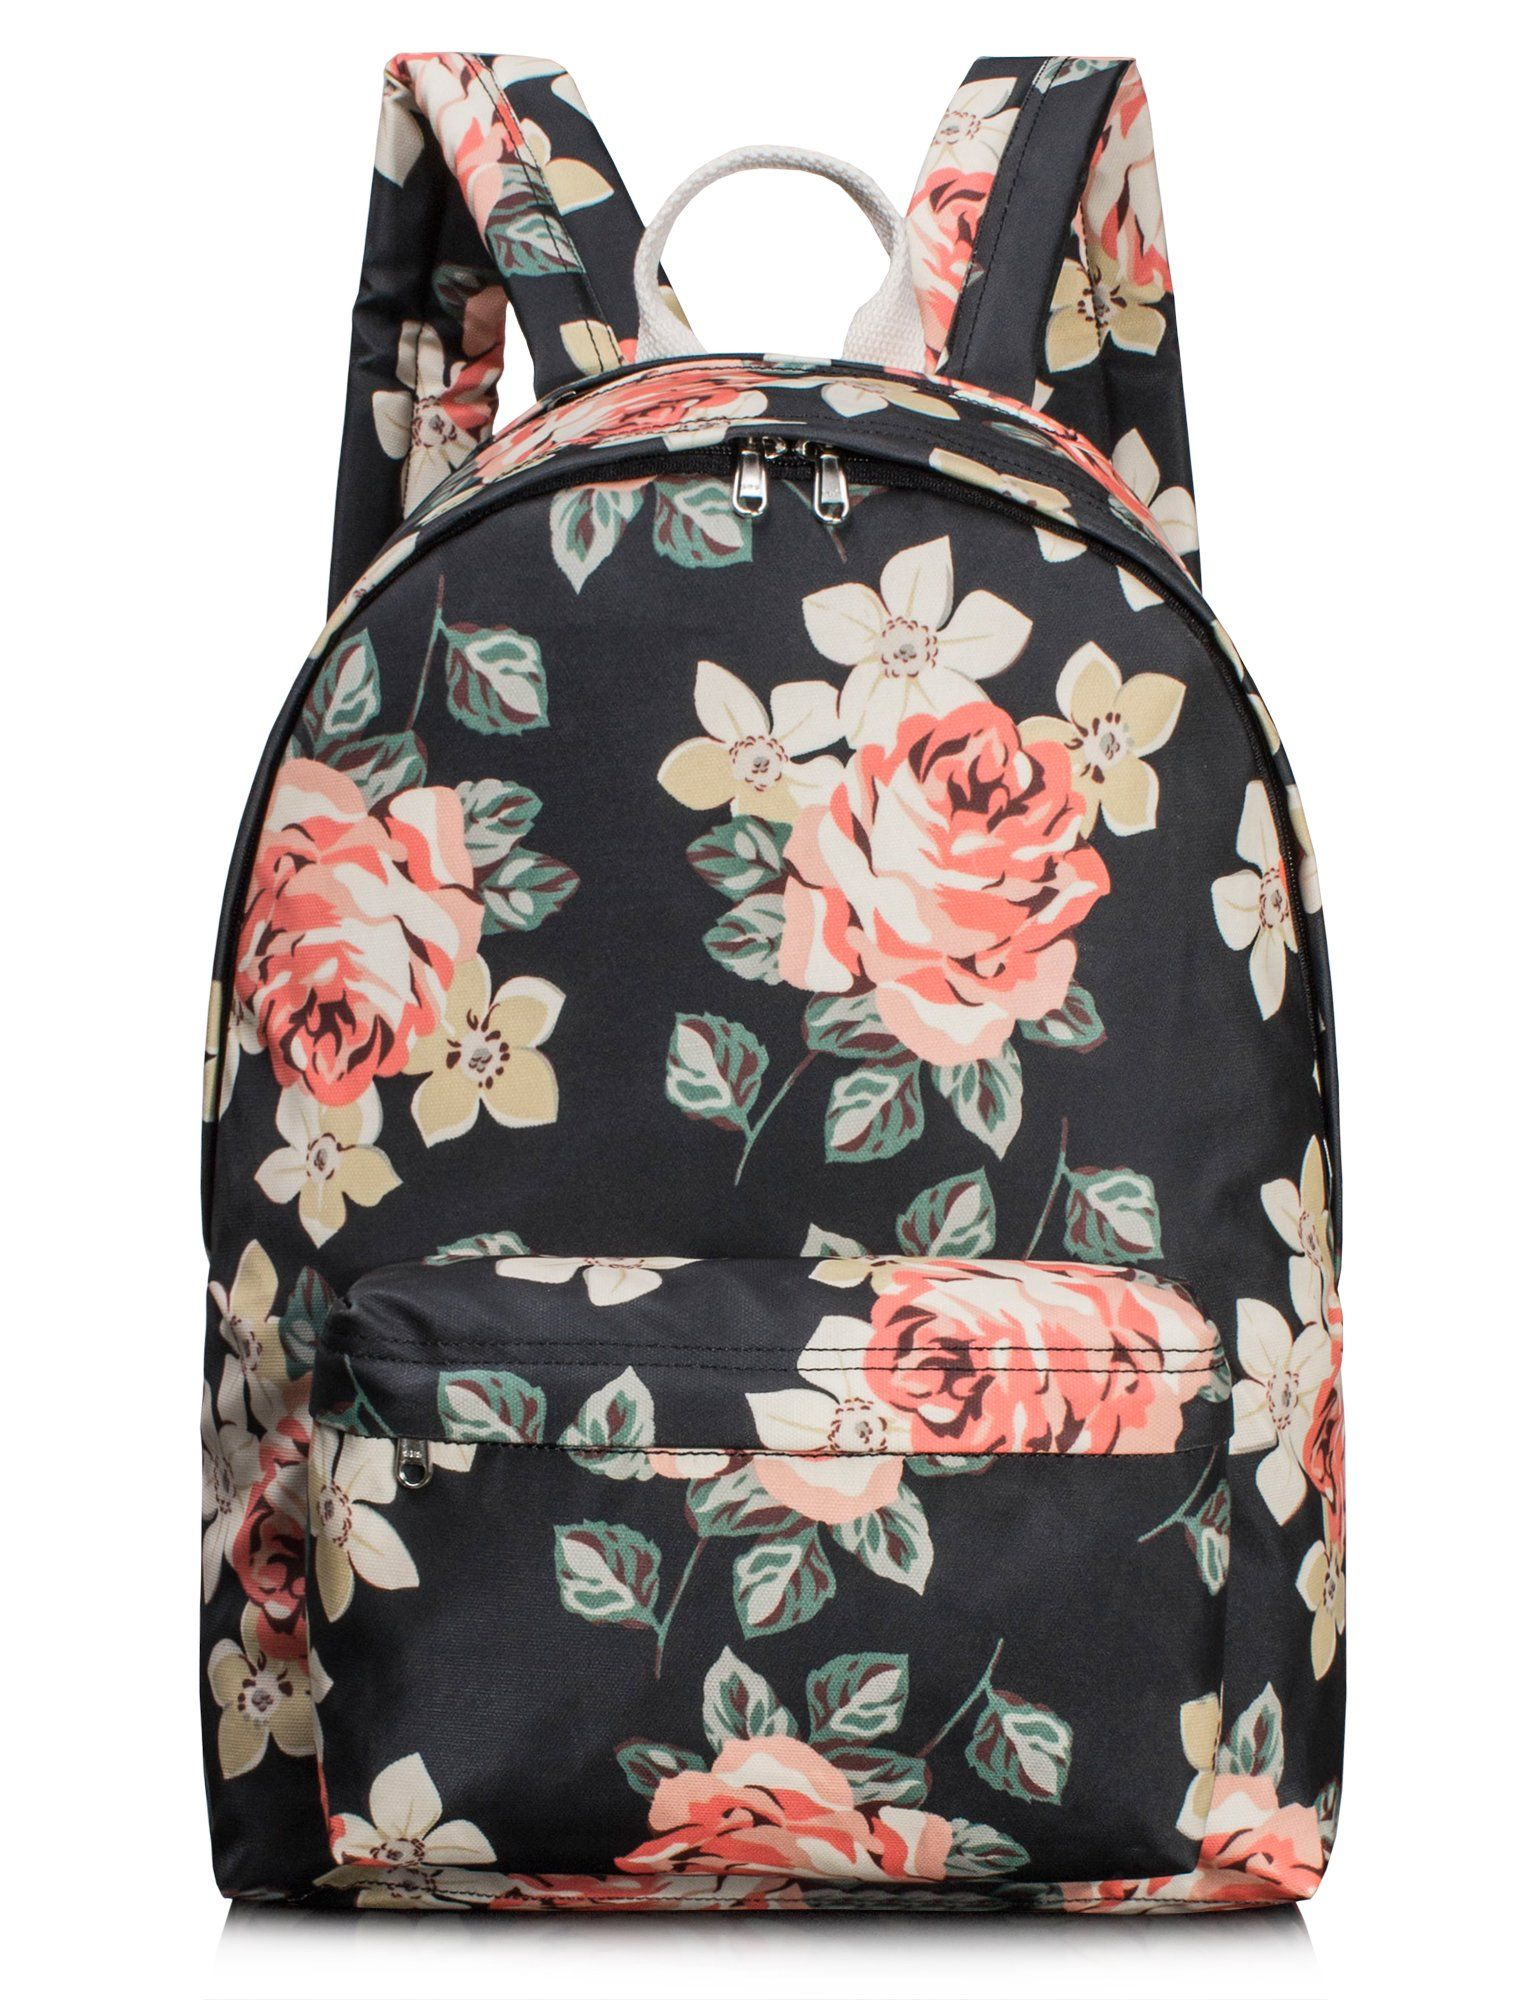 017414684b9a School Floral Backpack for Girls